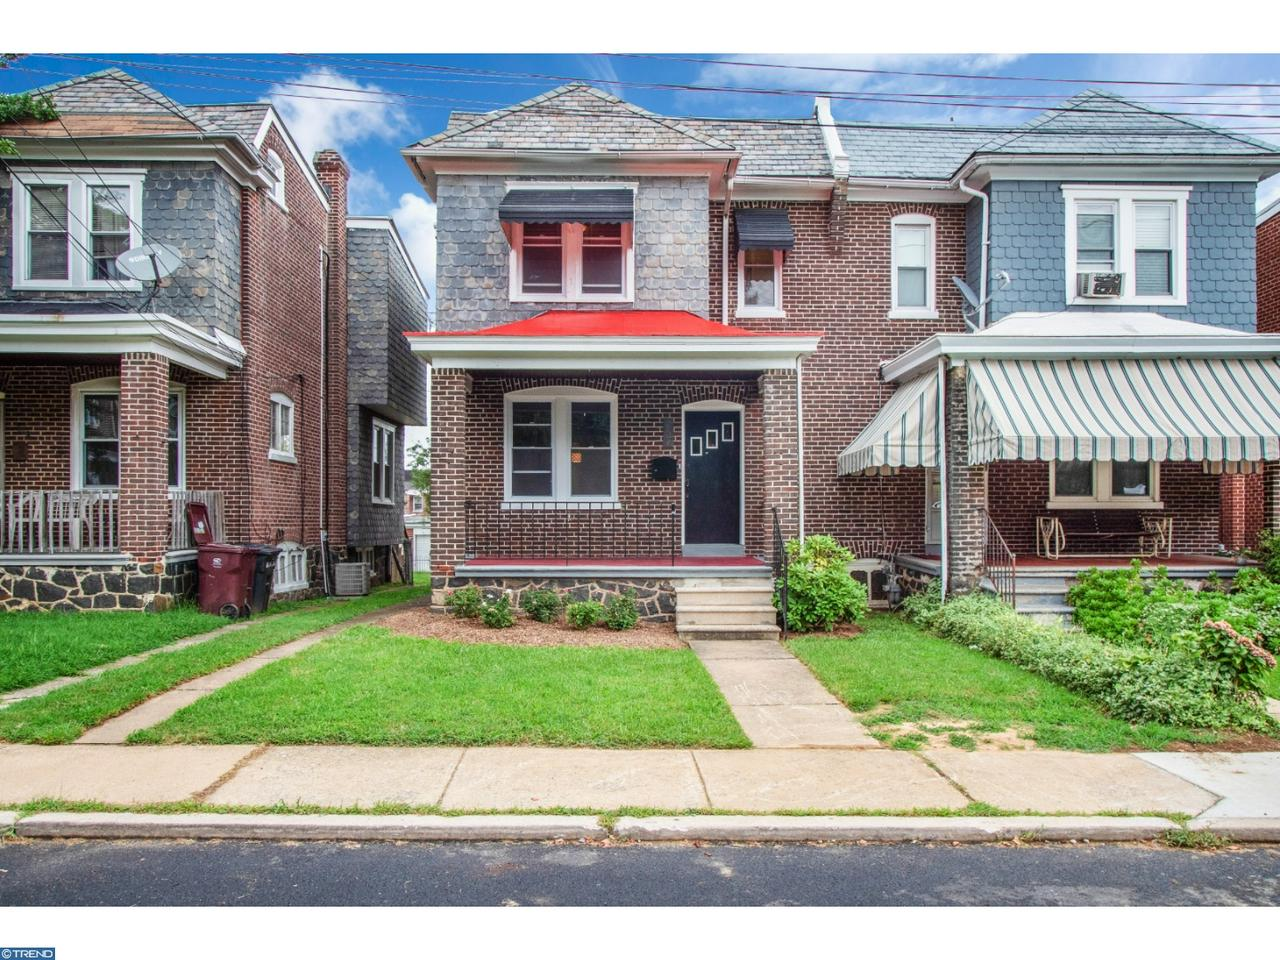 107 W 36TH STREET Wilmington Home Listings - Kat Geralis Home Team Wilmington Delaware Real Estate